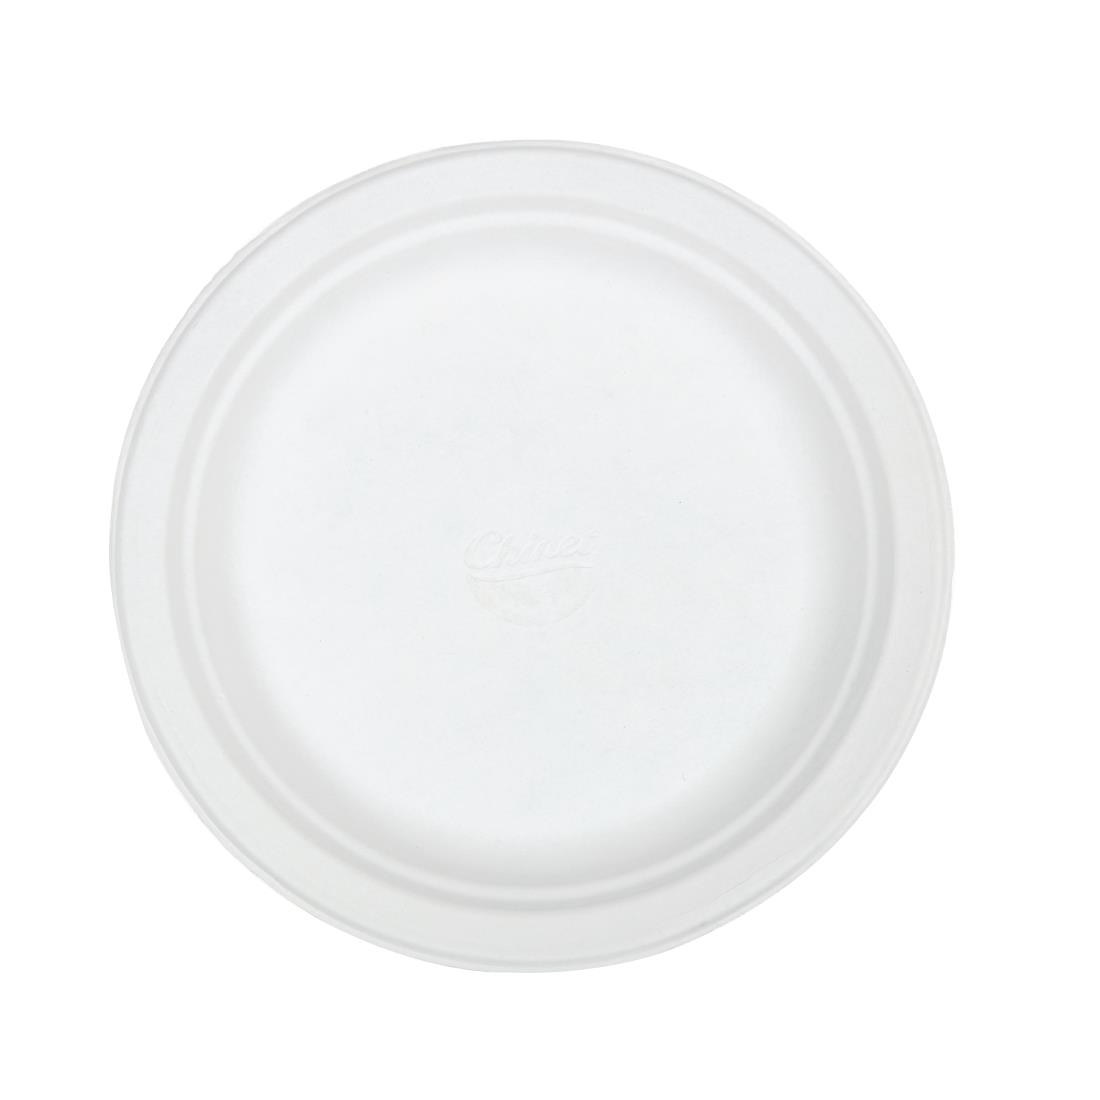 Image of Huhtamaki Compostable Moulded Fibre Chinet Plates 220mm (Pack of 125) Pack of 125